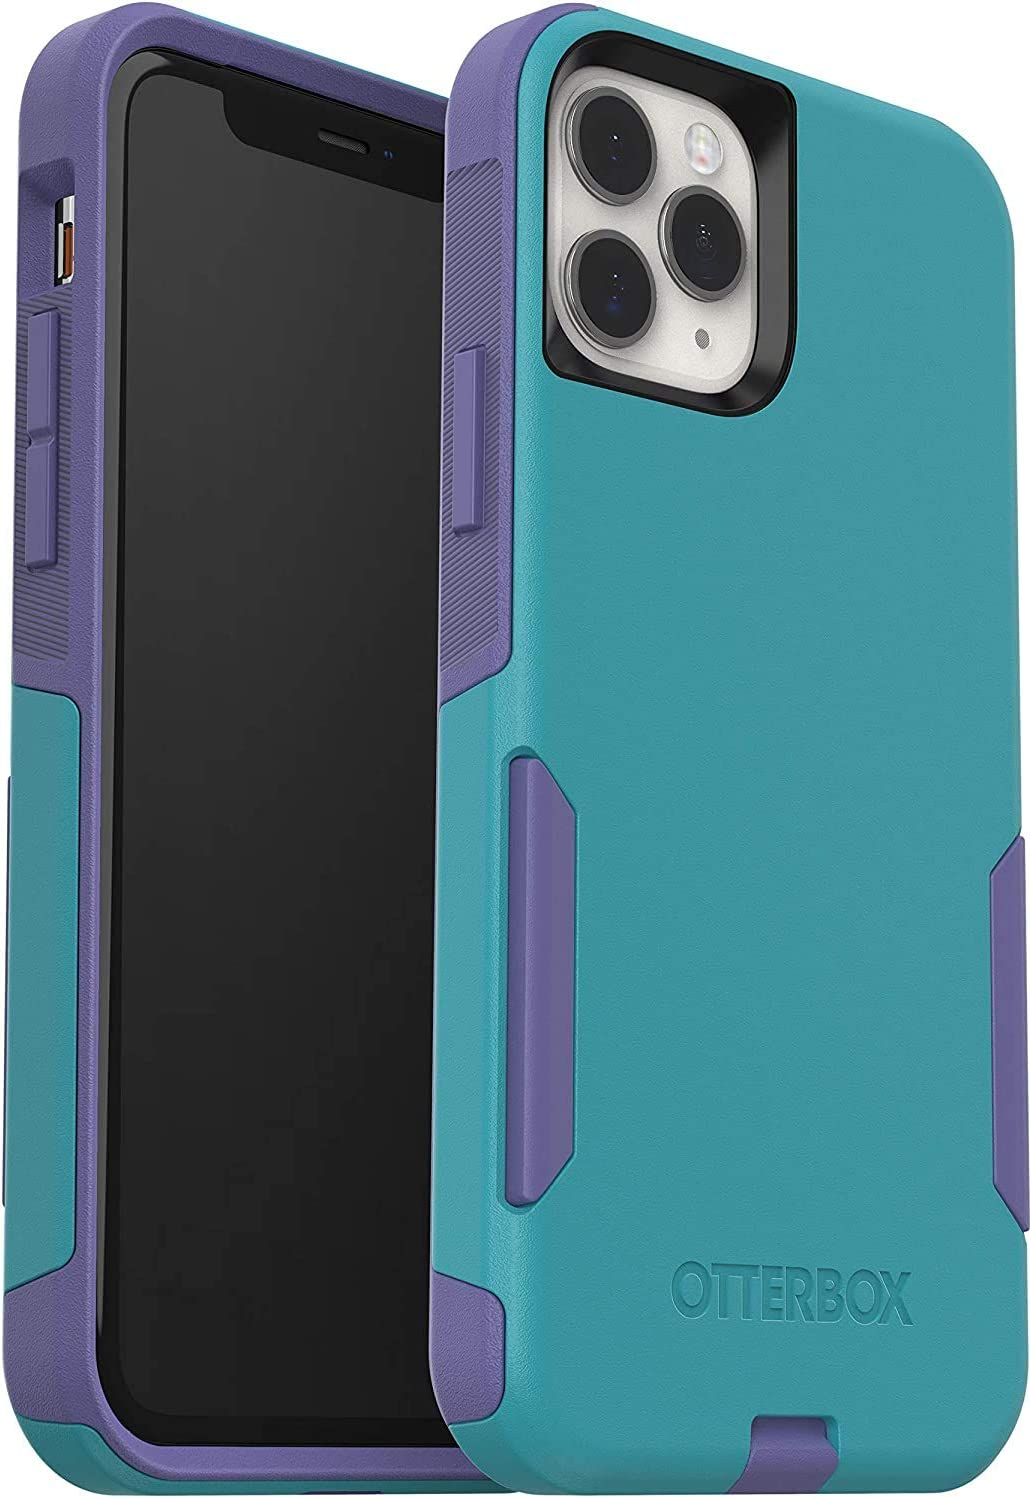 OtterBox Commuter Series Case for iPhone 11 PRO - Retail Packaging - Cosmic Ray